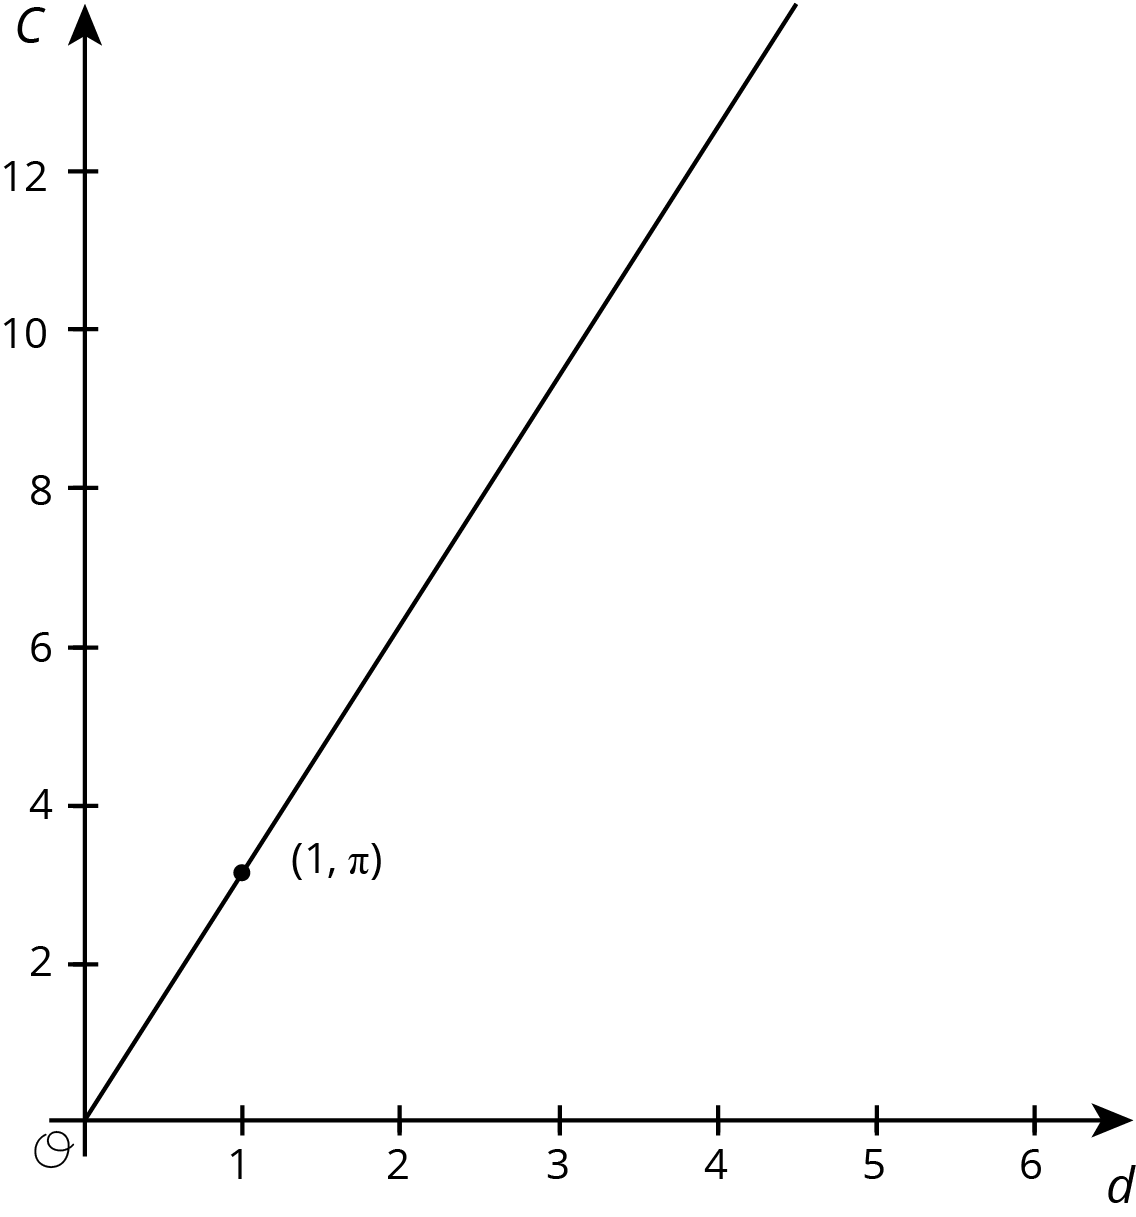 """A graph of a line in the coordinate plane with the origin labeled O. The horizontal axis is labeled """"d"""" and the numbers 1 through 6 are indicated. The vertical axis is labeled """"C"""" and the numbers 2 through 12, in increments of 2, are indicated. The line begins at the origin, slants upward and to the right, and passes through the point 1 comma pi."""